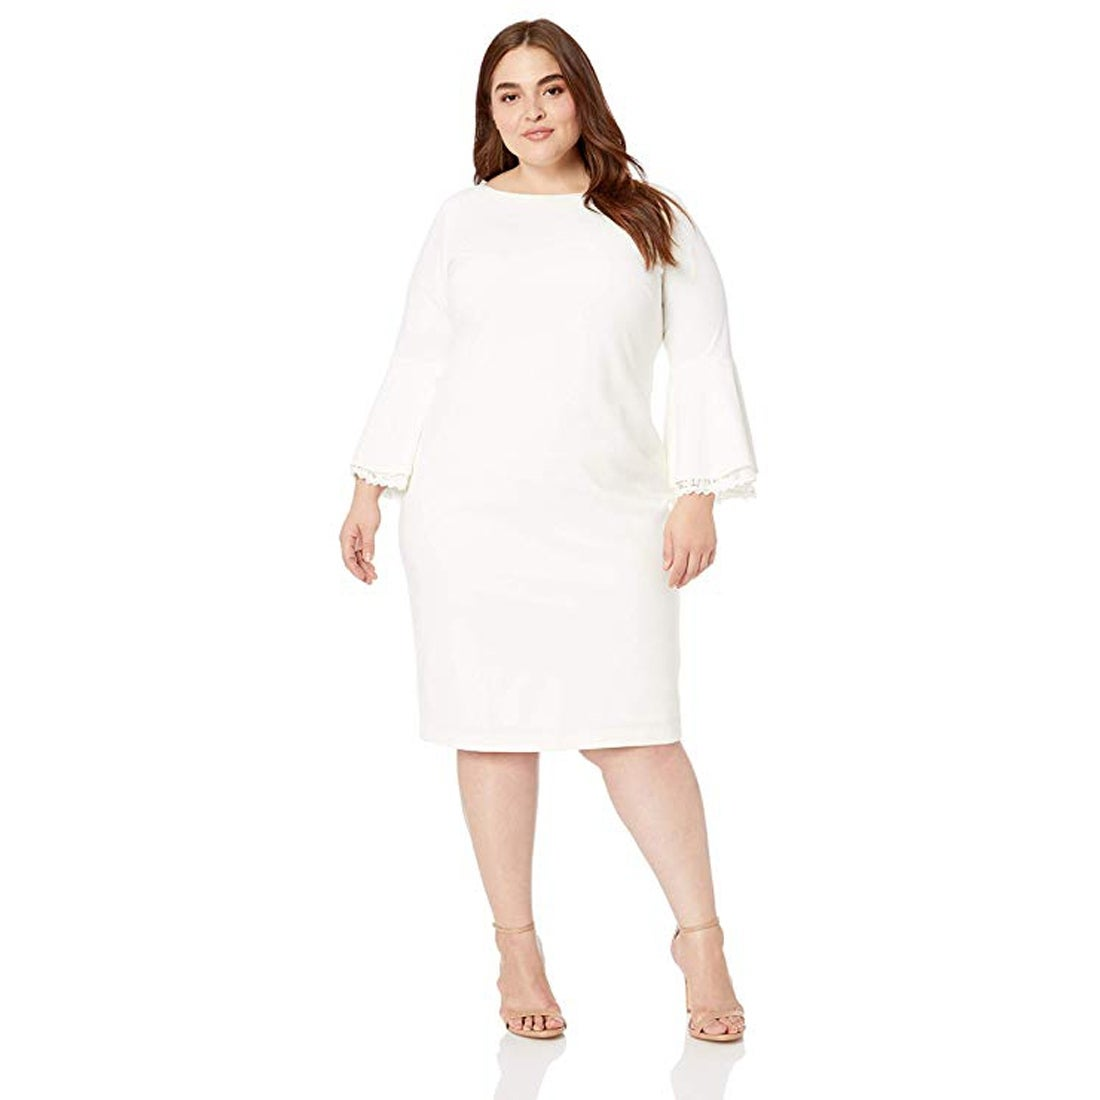 Calvin Klein Plus Size Lace Trim Bell-Sleeve Sheath Dress, Cream, 14W